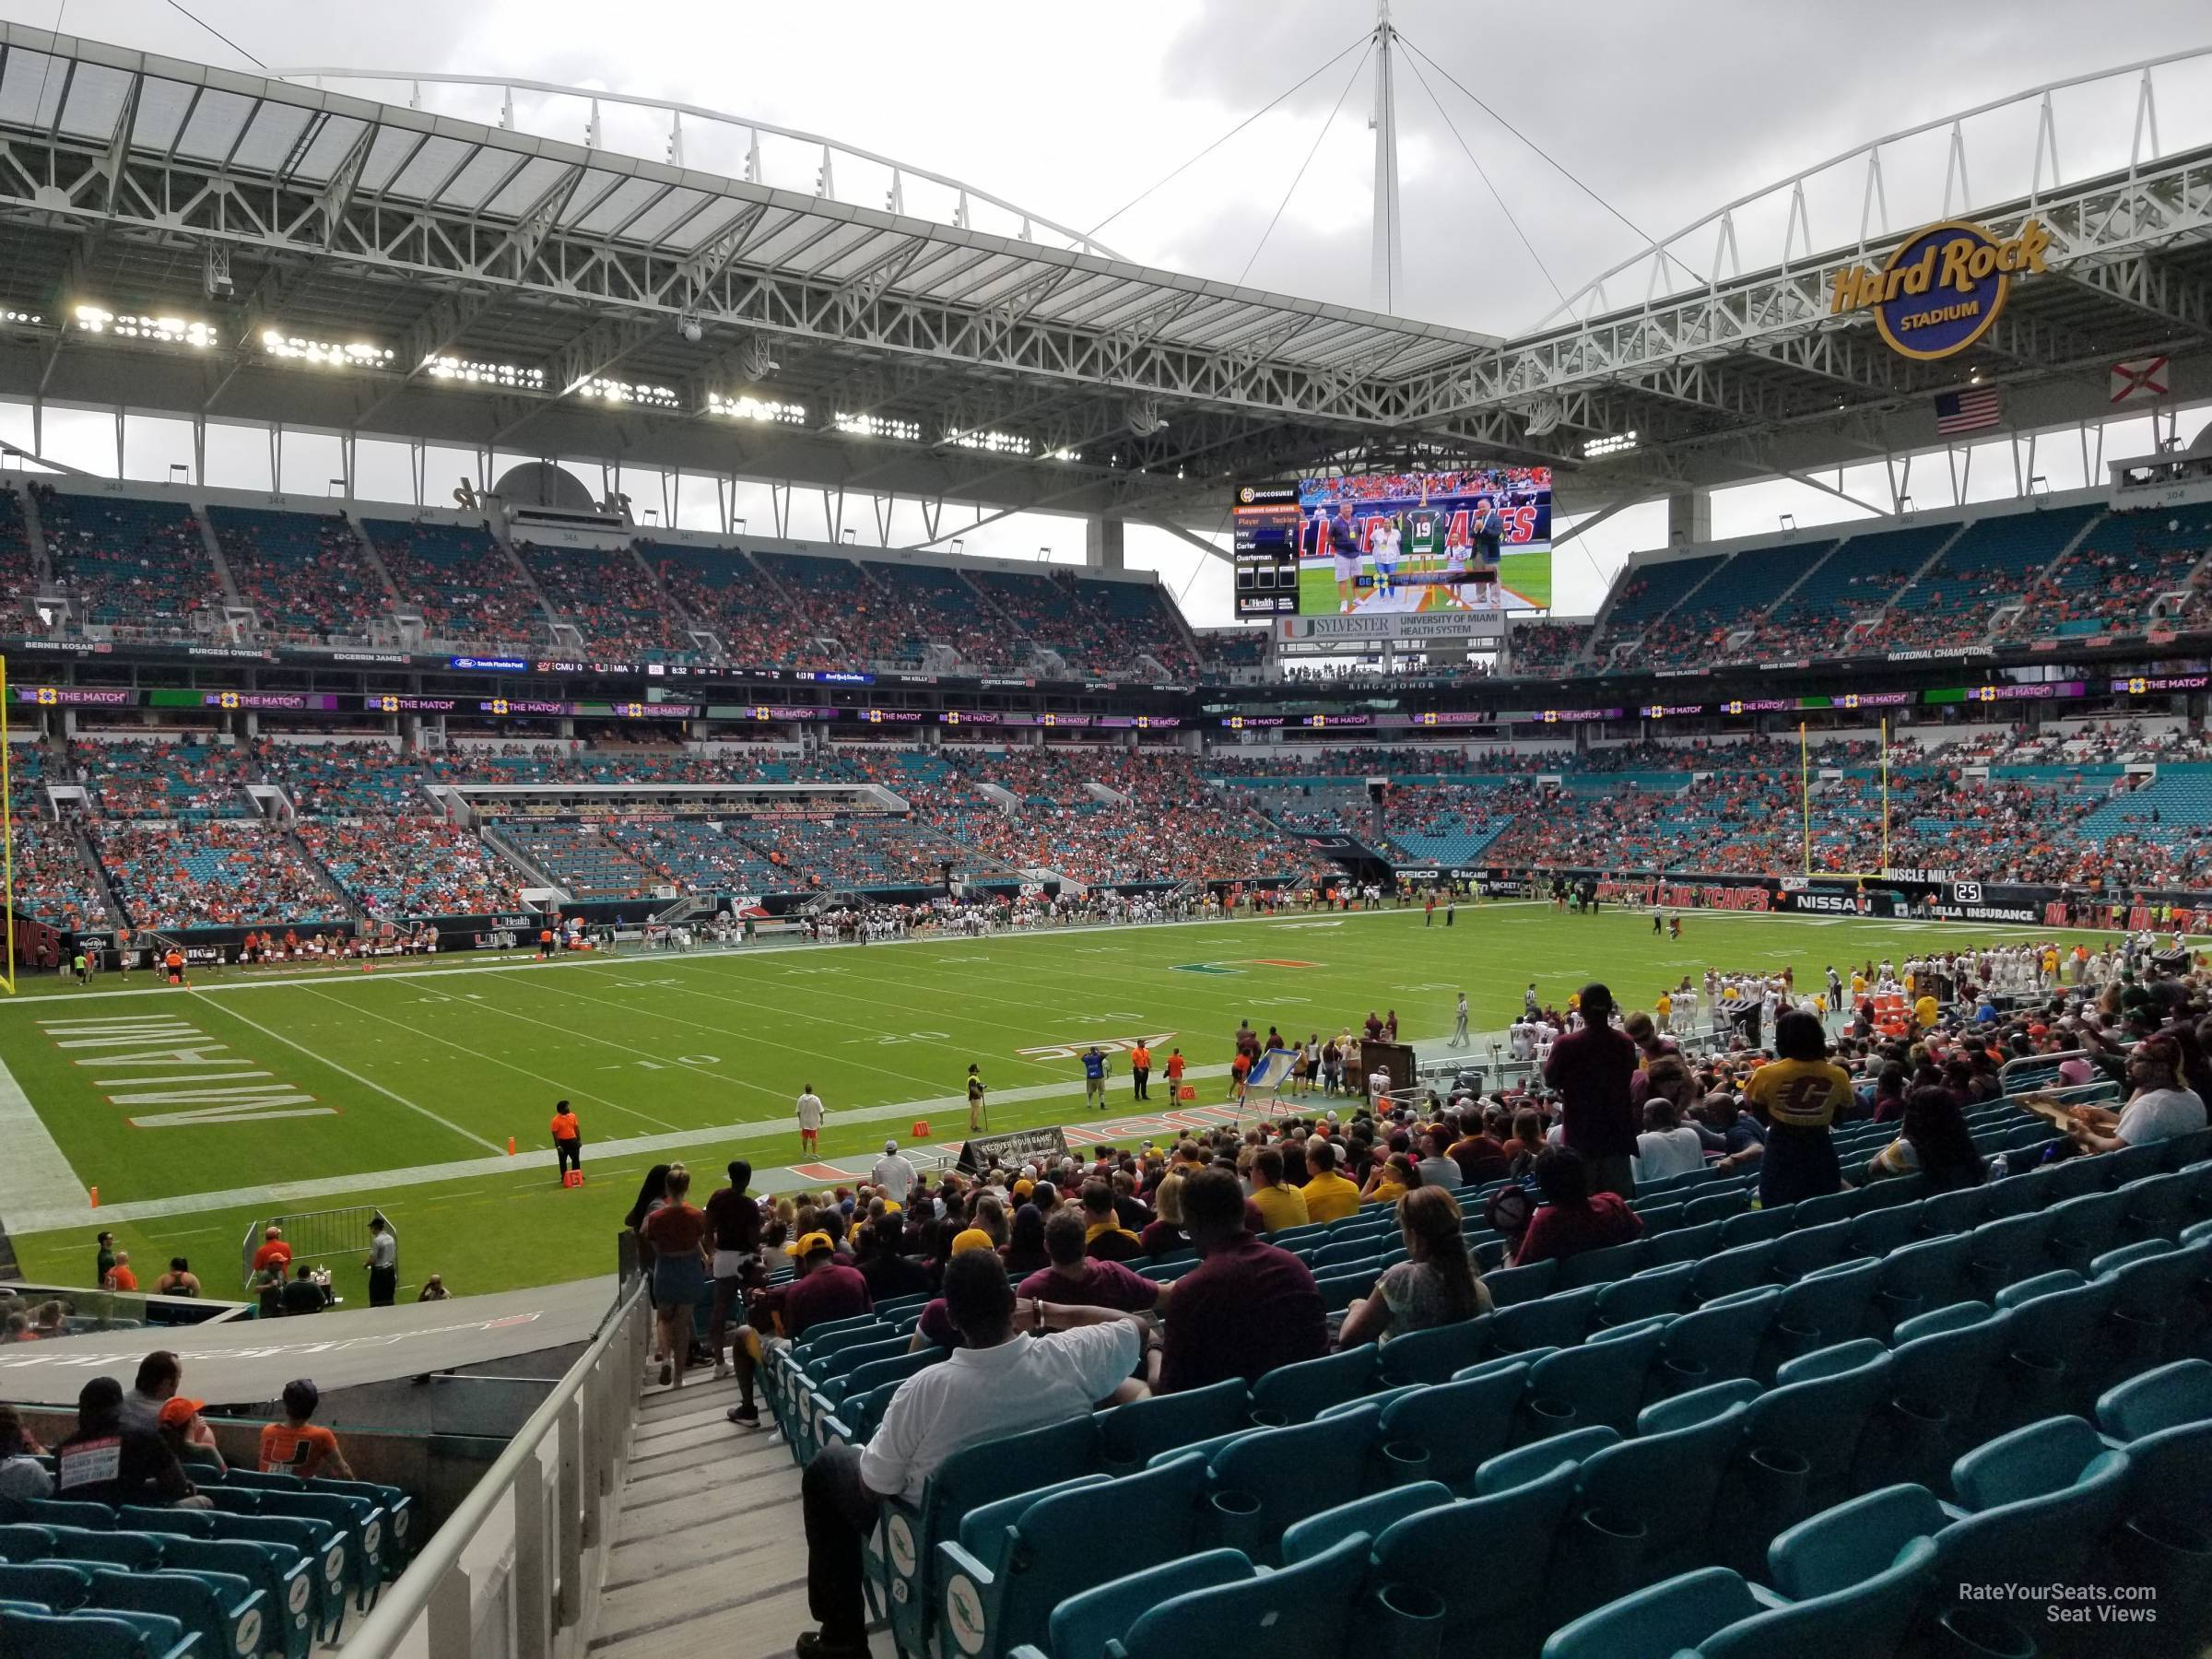 section 122 at hard rock stadium - miami dolphins